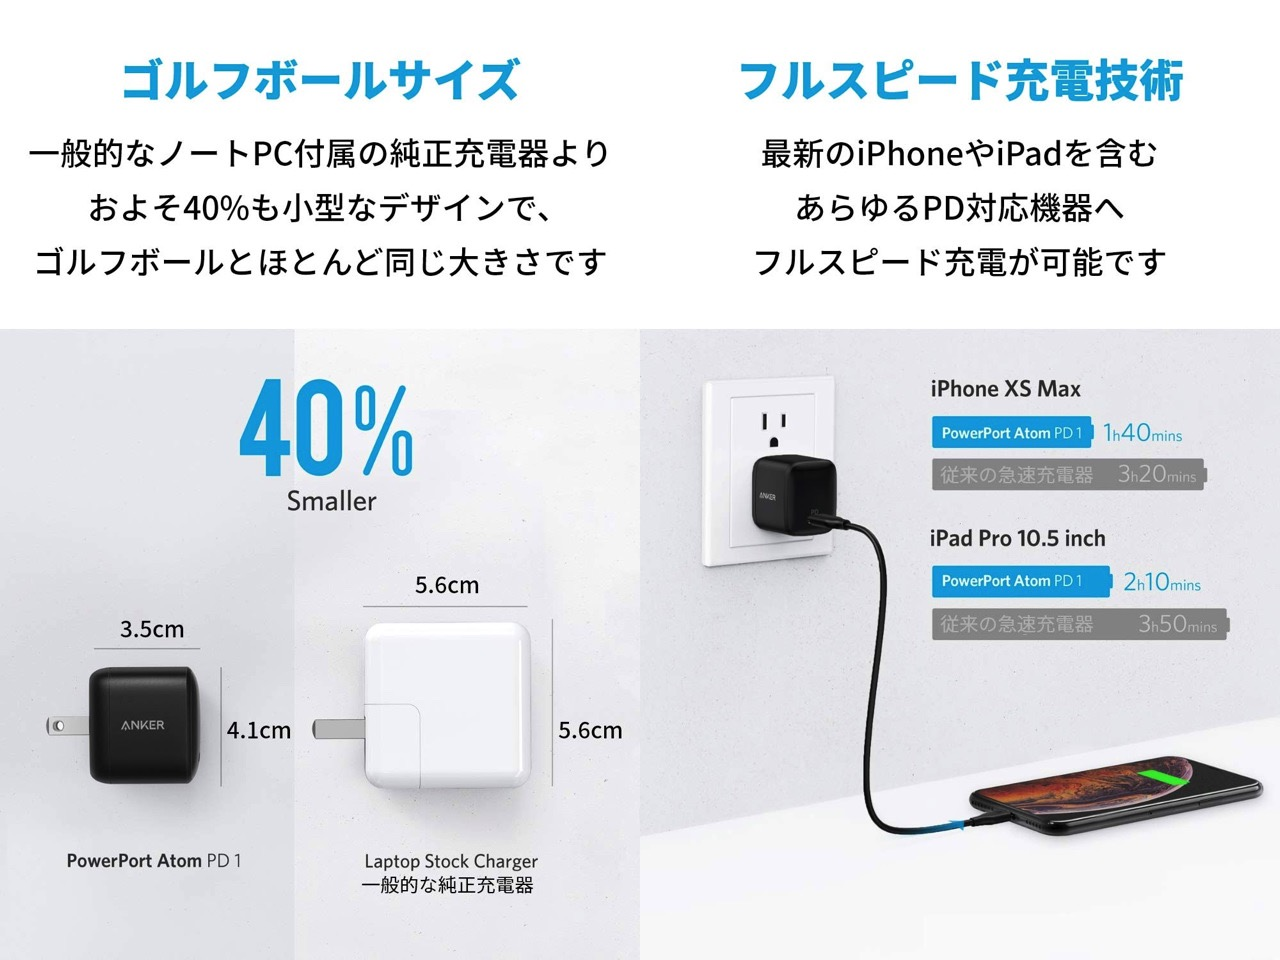 Anker powerport atom pd 1 black1